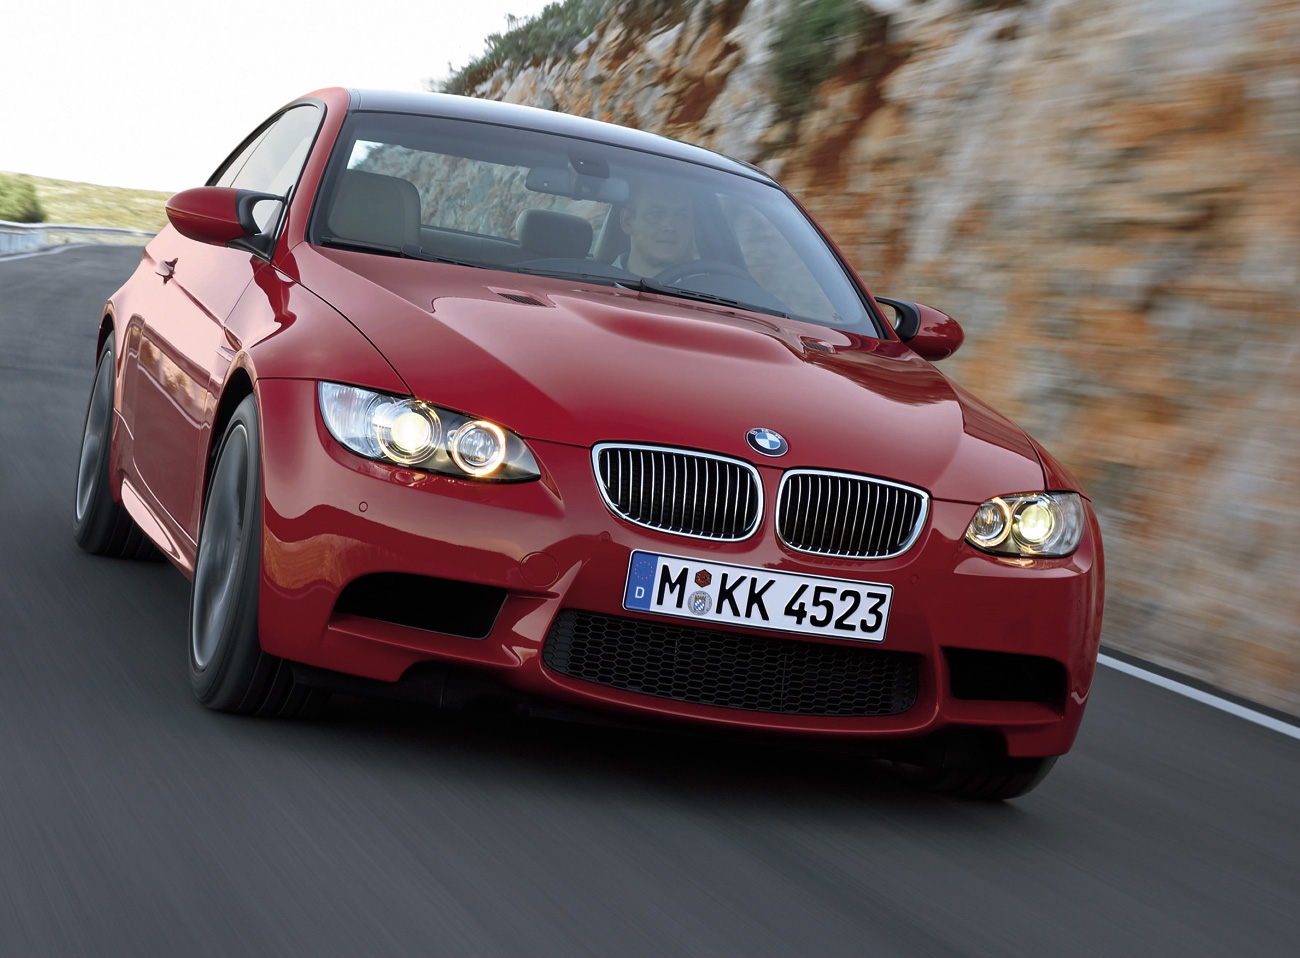 Bmw Cars pPrices In Chennai Wallpaper For Iphone